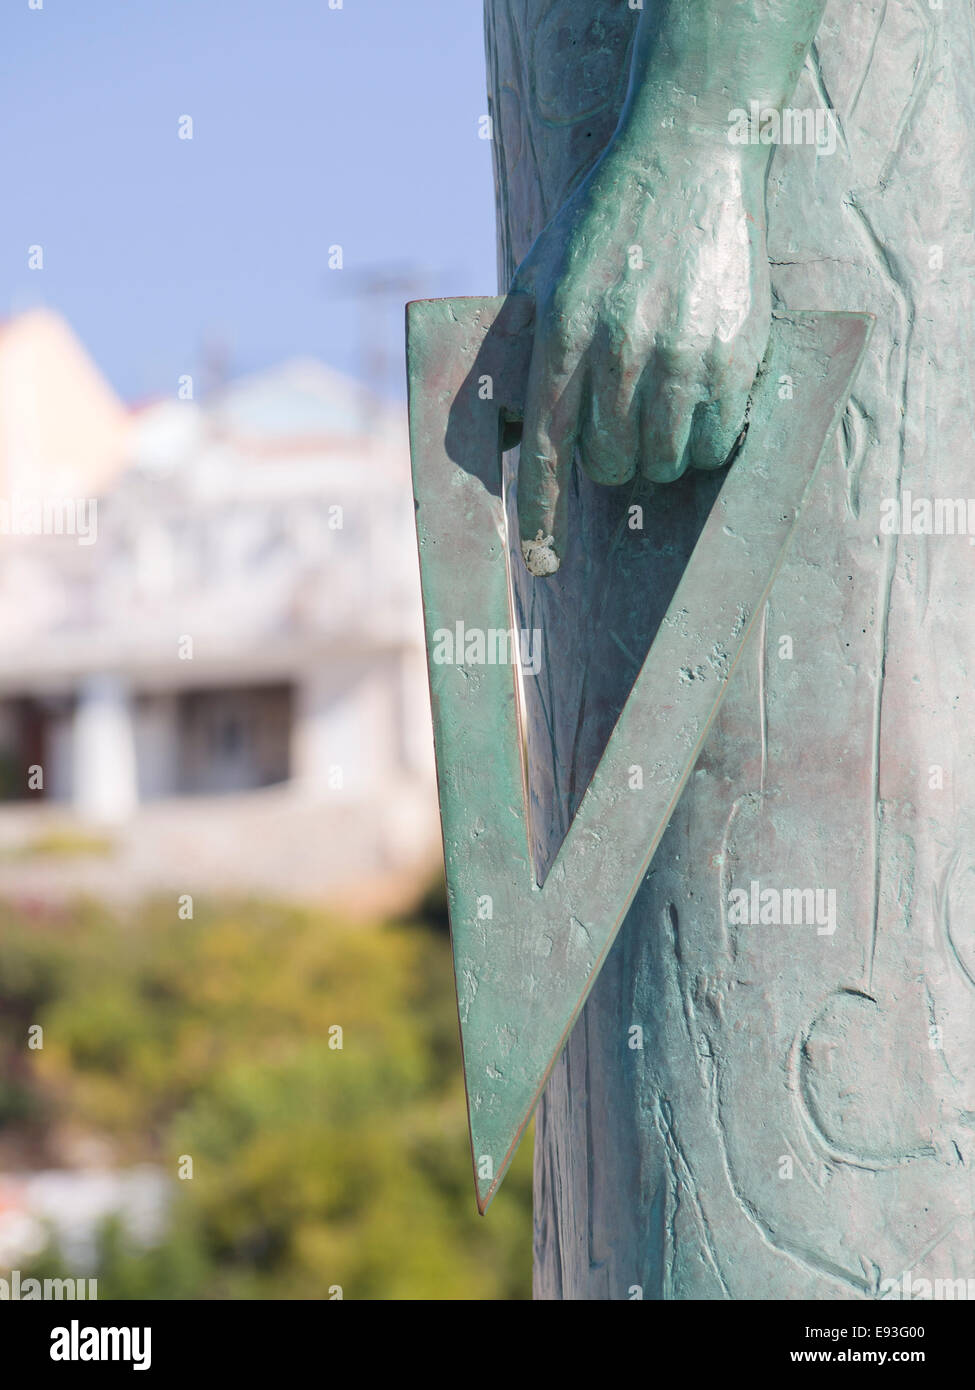 Pythagoras of Samos, monument erected in his home town named after him, Pythagorion in the island of Samos Greece Stock Photo